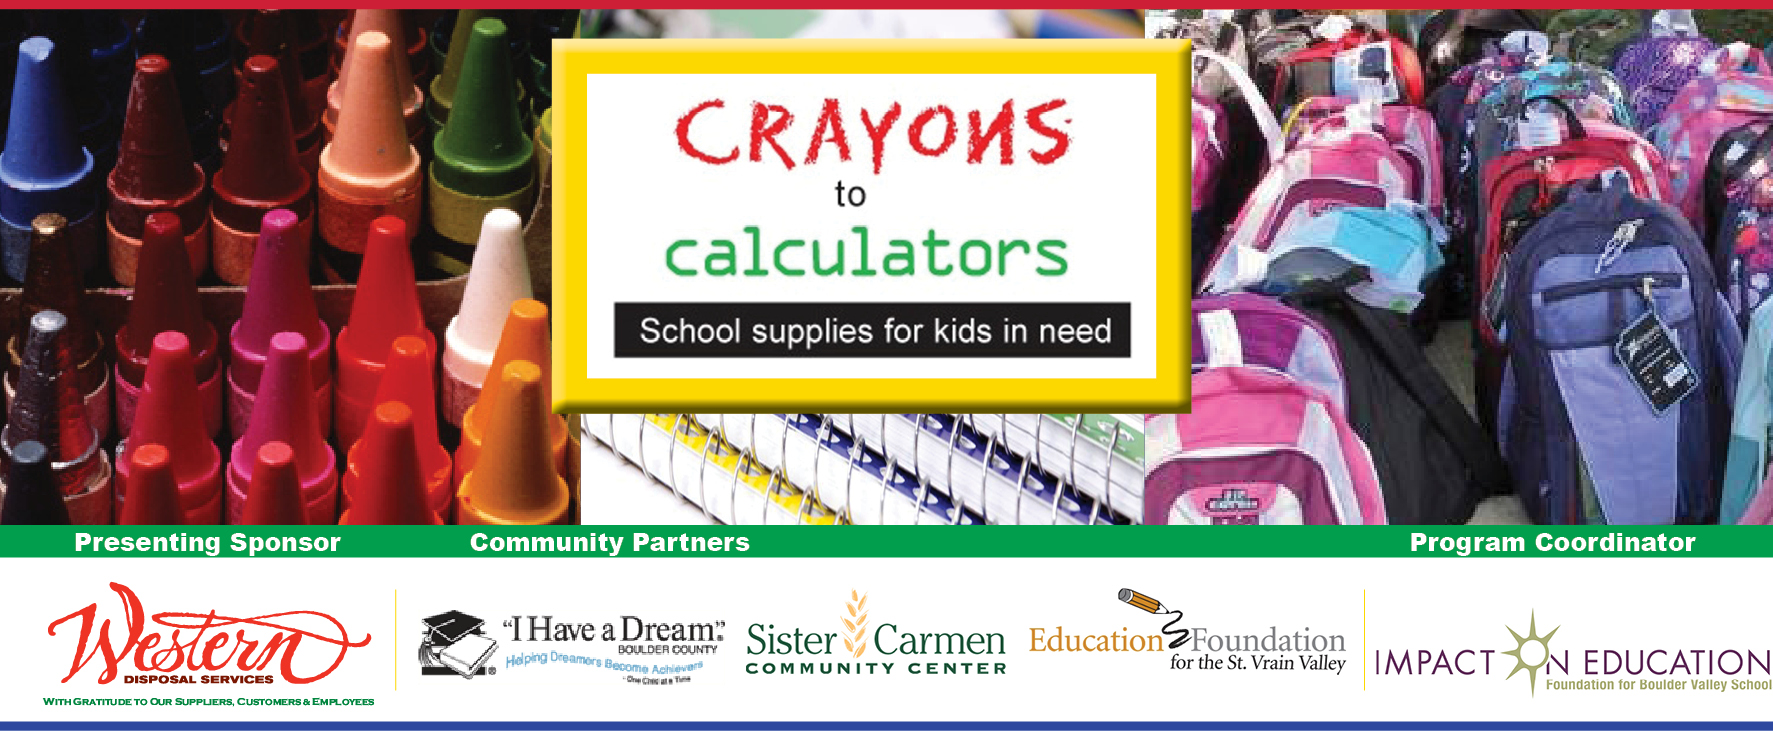 About Crayons to Calculators